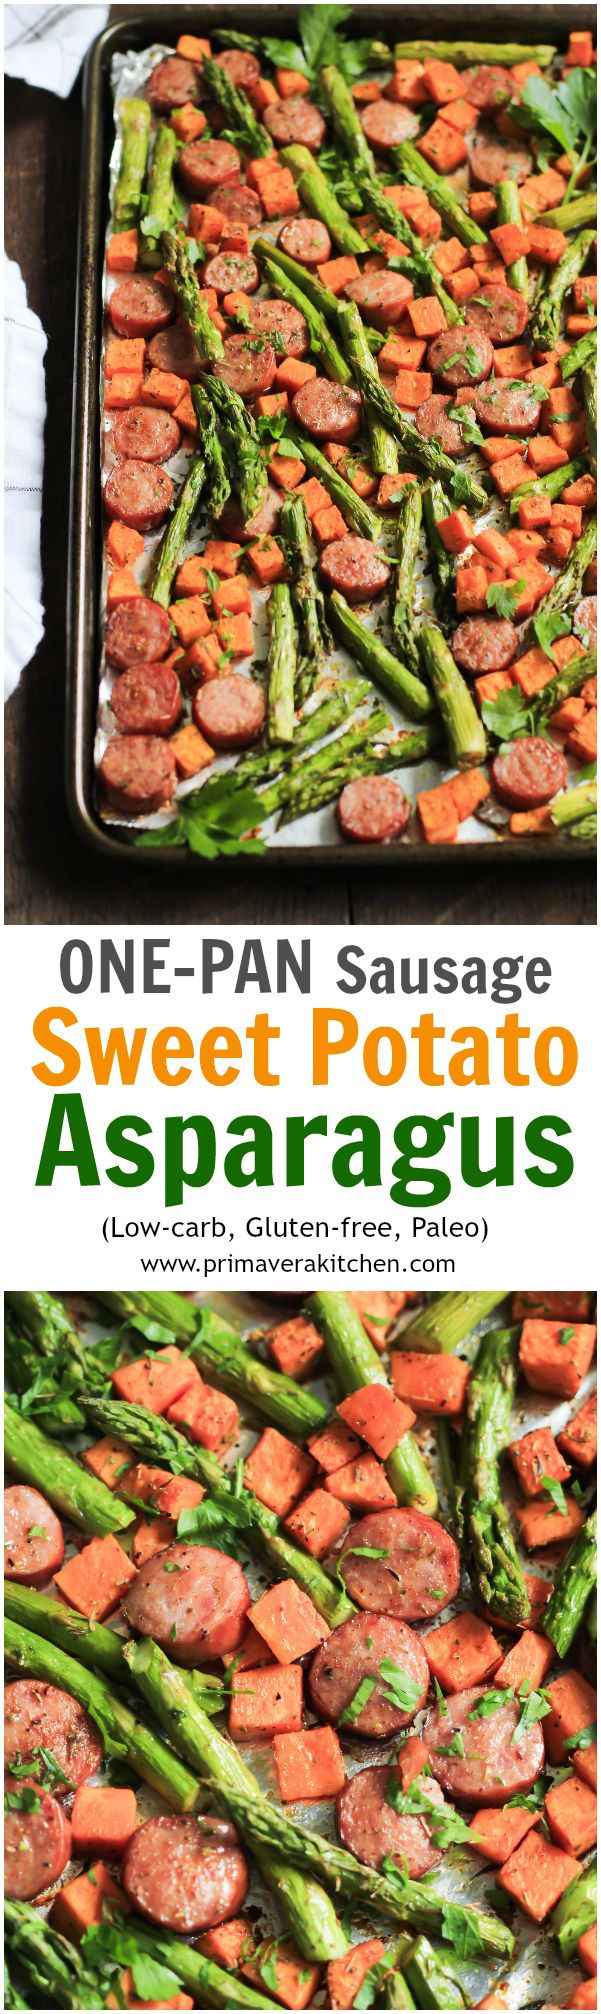 One-Pan Sausage with Sweet Potato and Asparagus - This One-pan Sausage with Sweet potato and Asparagus recipe is all made in one-pan, which is great for cleaning up and it's ready in 15 minutes.